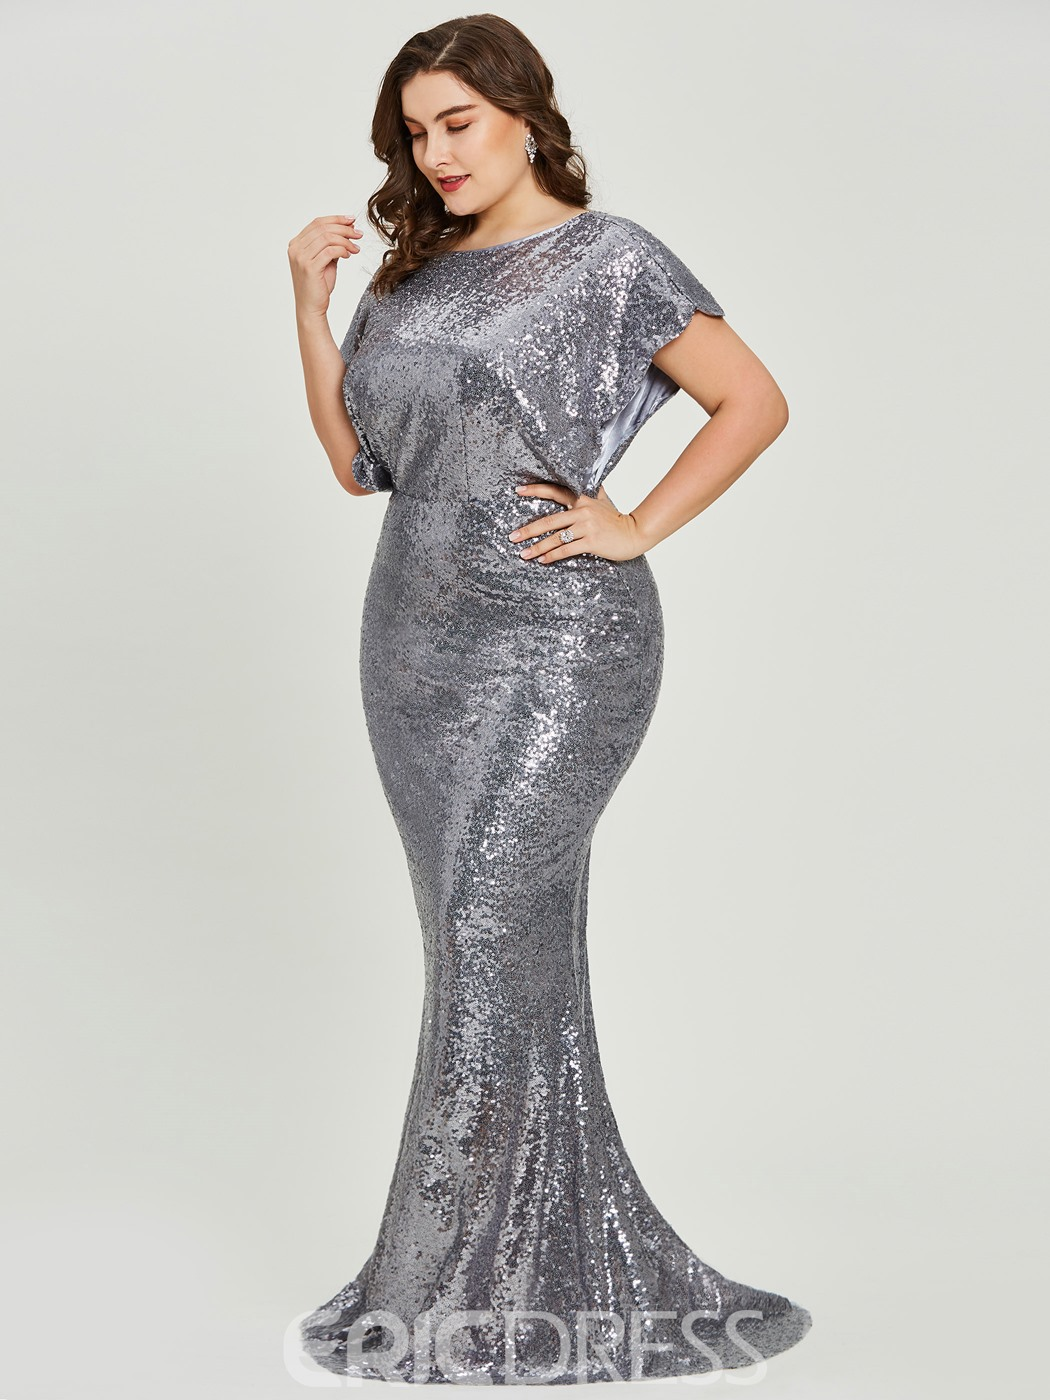 Ericdress Sequins Mermaid Plus Size Evening Dress With Short Sleeves ...